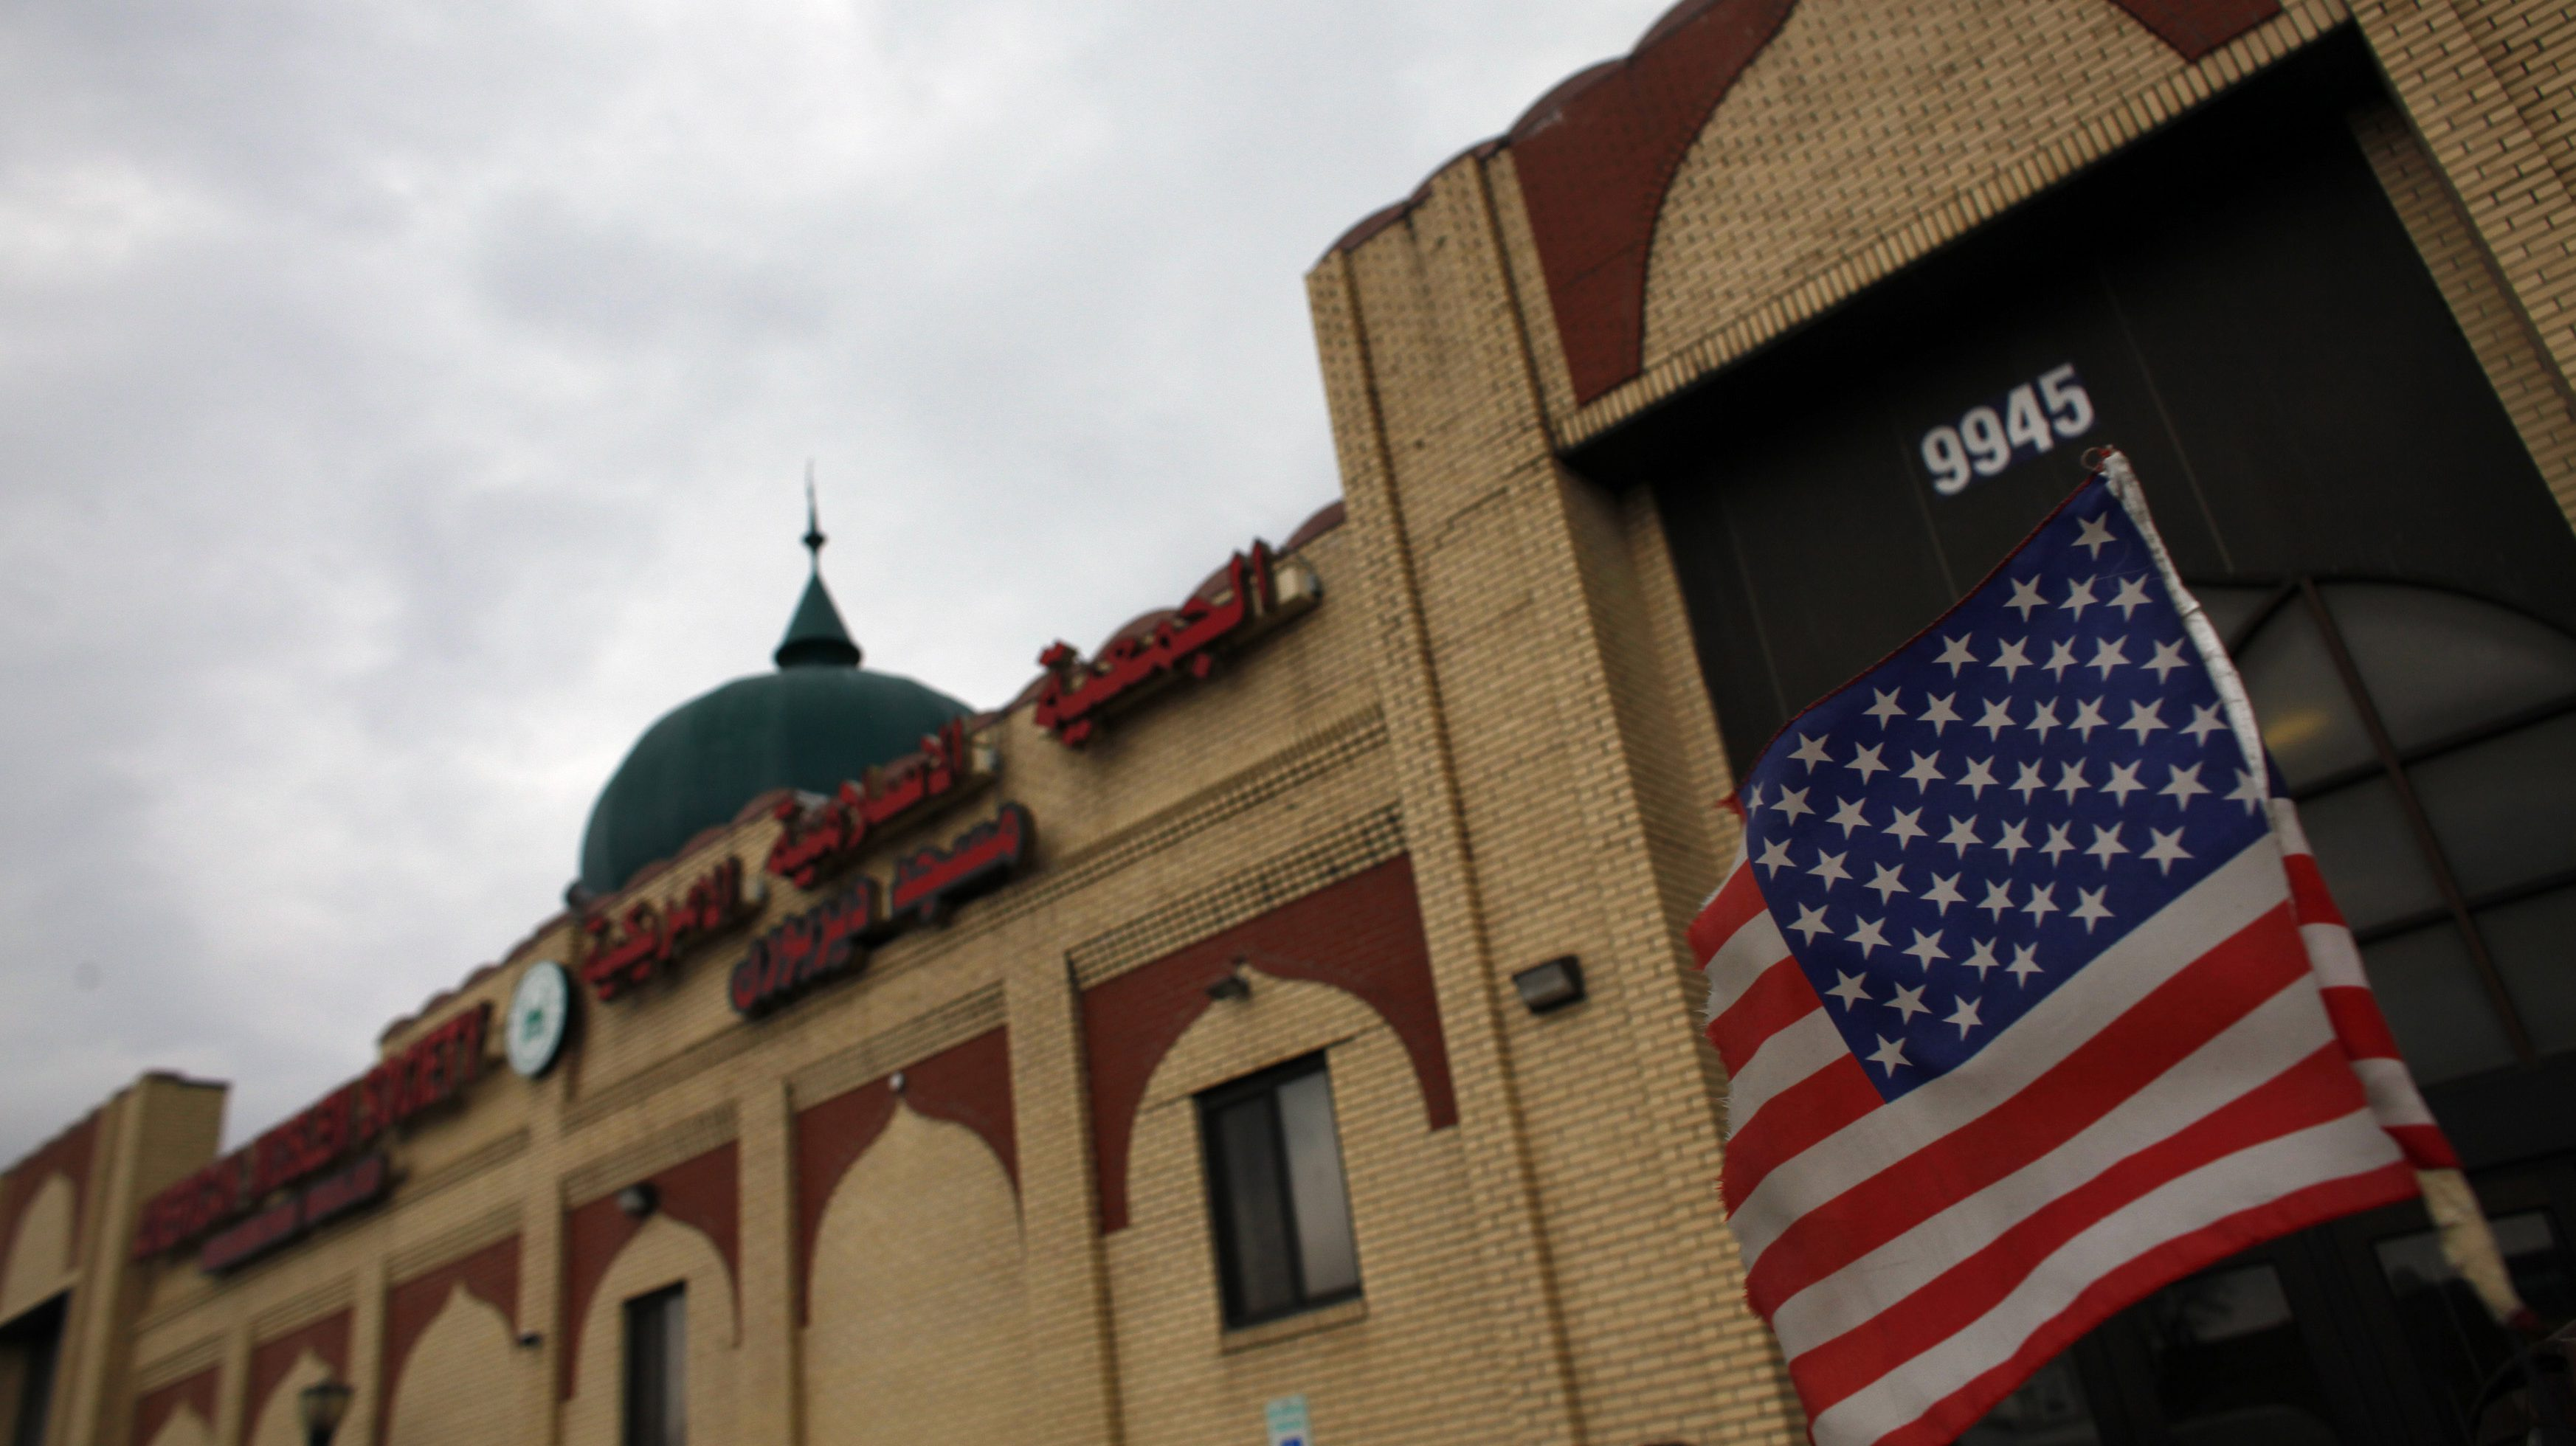 An American flag hangs on a car outside the American Muslim Society mosque in Detroit, Michigan April 5, 2011.